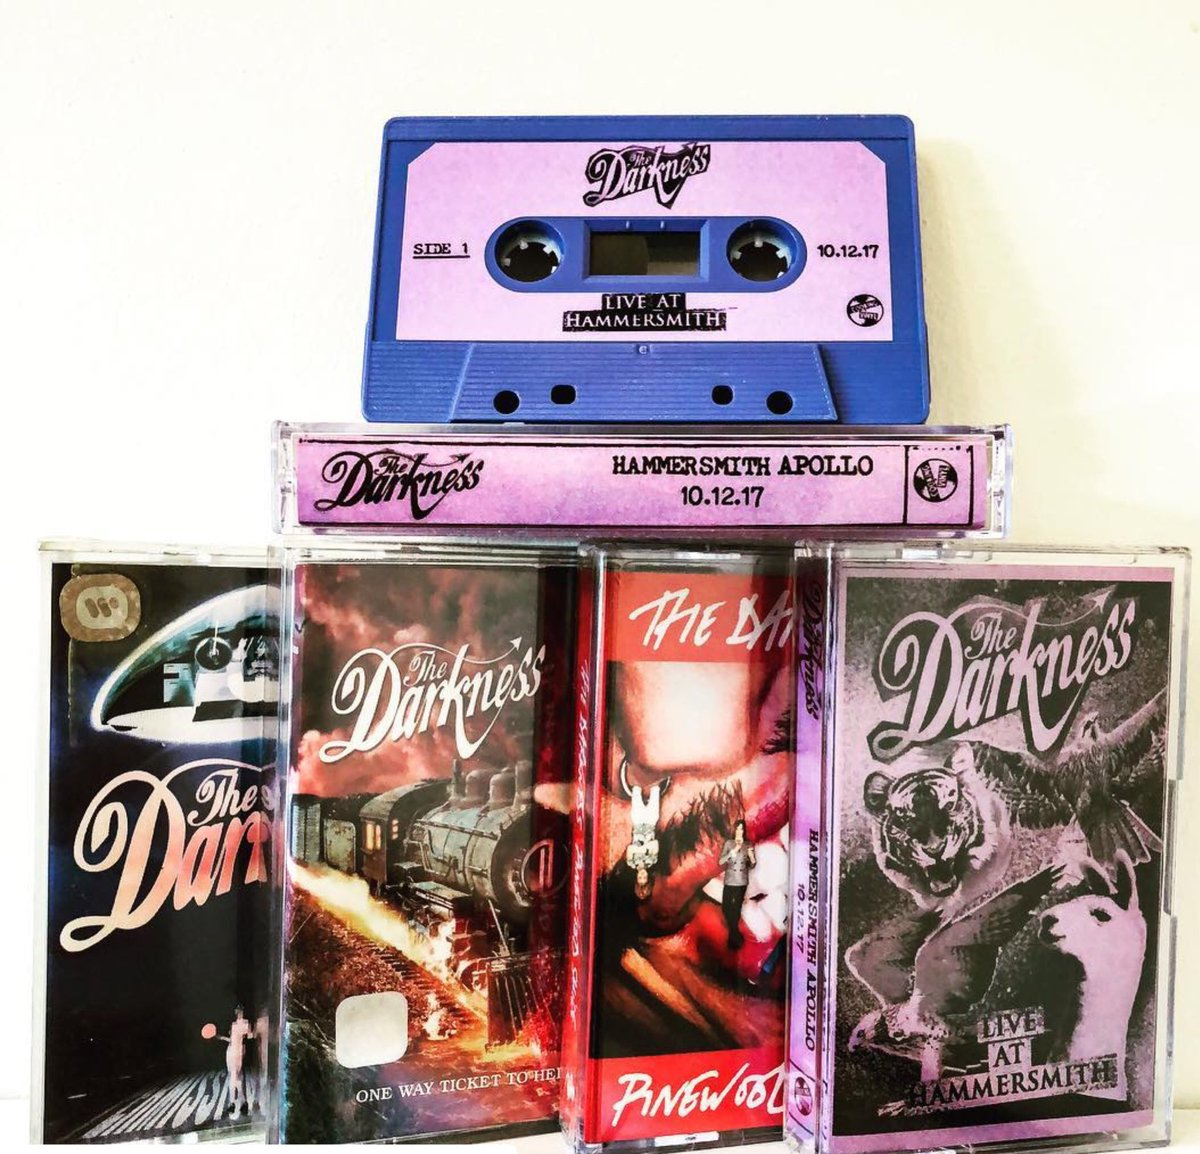 Cassettes! Our new LIVE album, The Darkness LIVE at Hammersmith is out now, available on cassette, double gatefold vinyl, CD, and computer stuff! Fanks @Sue__Thompson for the photo and the love. #thedarkness #cassette Grab it at our official store thedarkness.lnk.to/LAH